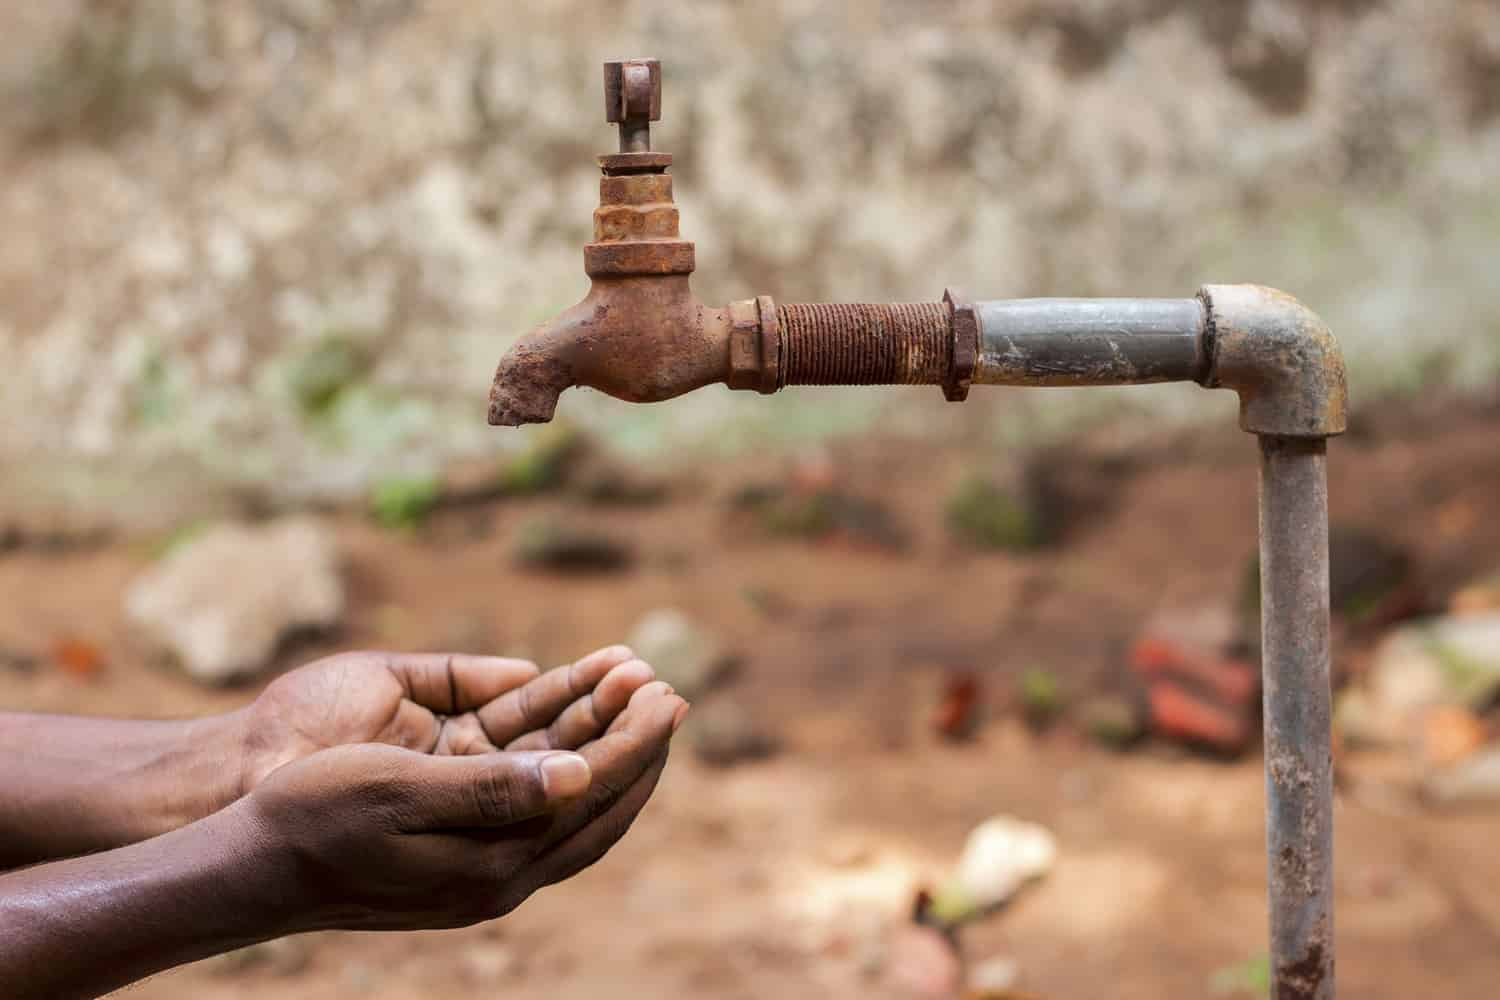 https://www.citizen.co.za/news/south-africa/2598235/limpopo-dam-levels-down-to-82-but-still-holding/